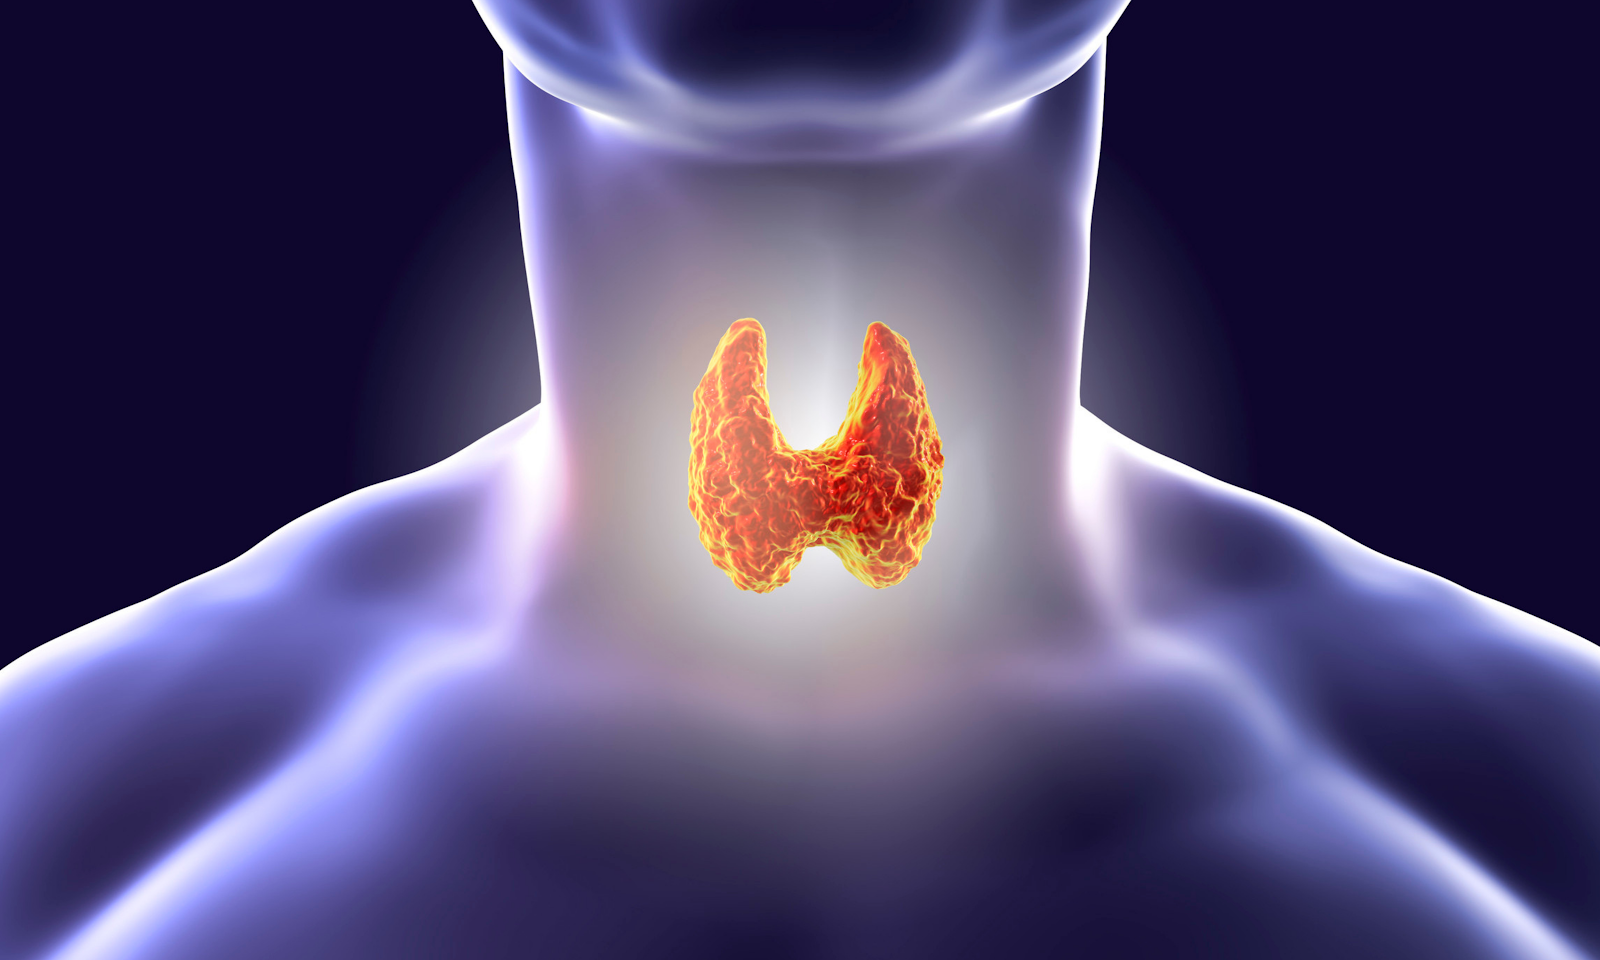 Animated image of a thyroid for indicating the importance for maintaining permanent weight loss